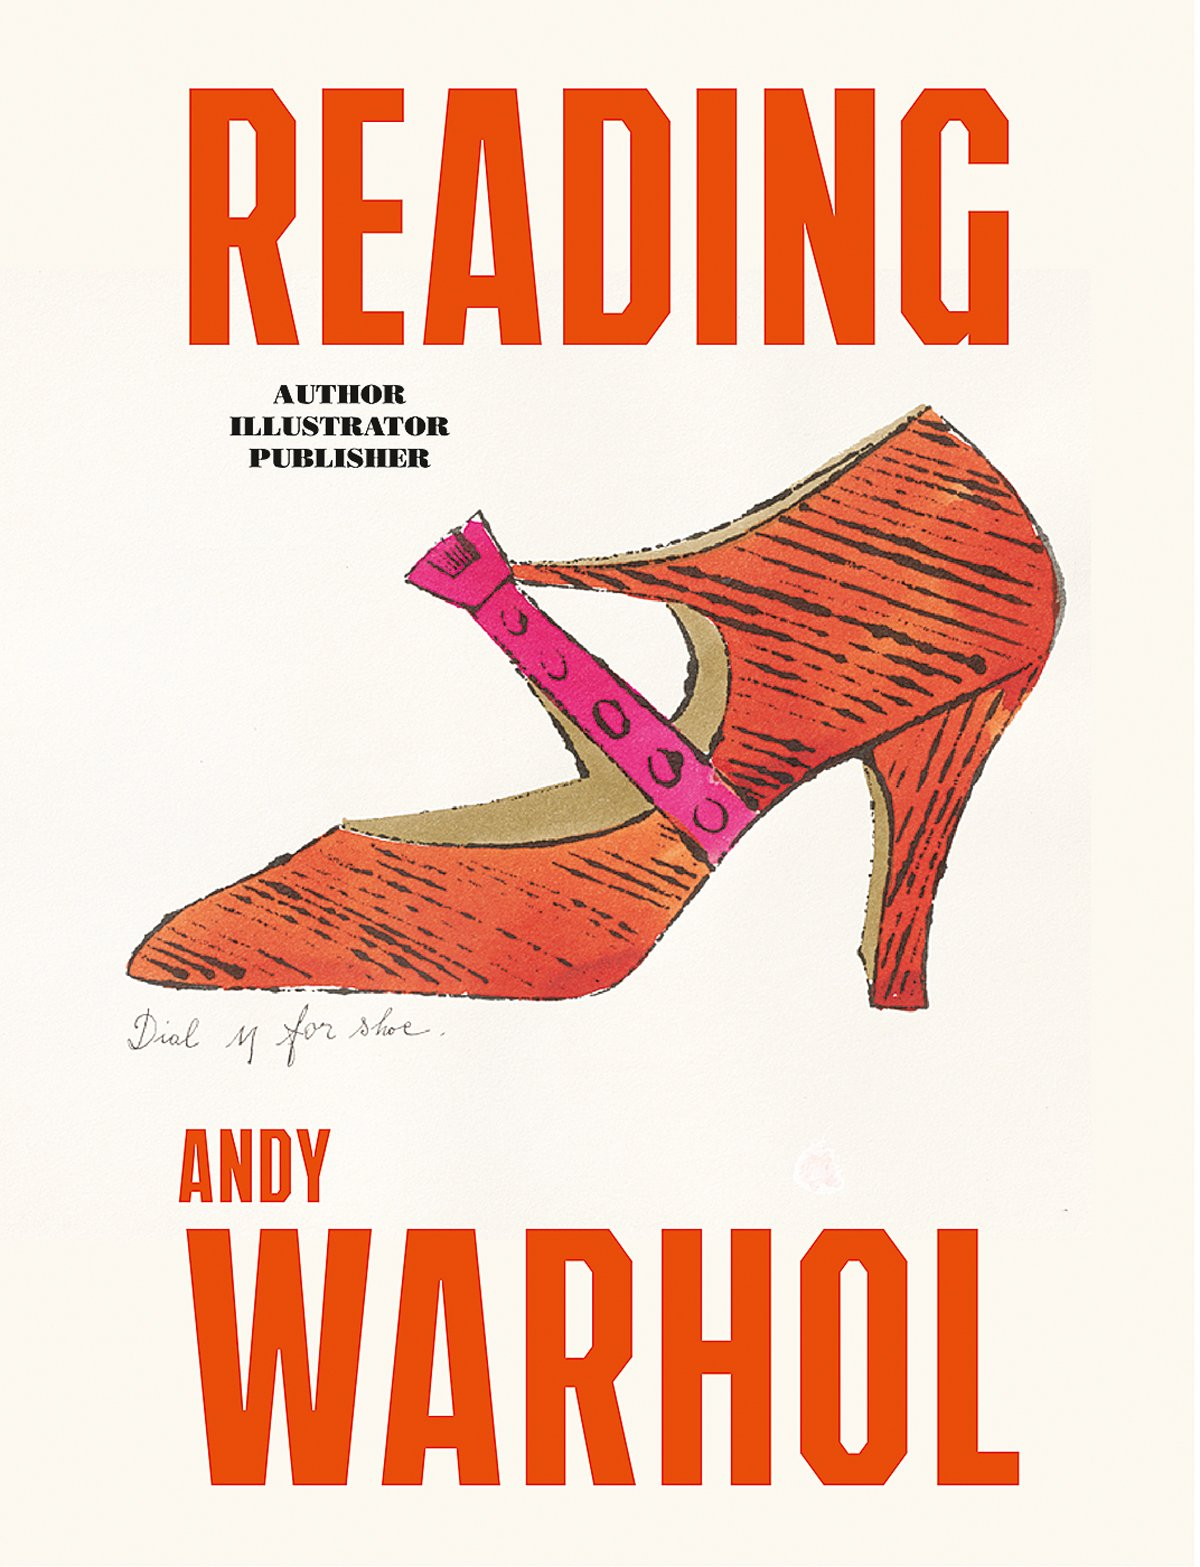 andy warhol essay andy warhol recovered essay gcse art marked by reading andy warhol author illustrator publisher lucy mulroney reading andy warhol author illustrator publisher lucy mulroney